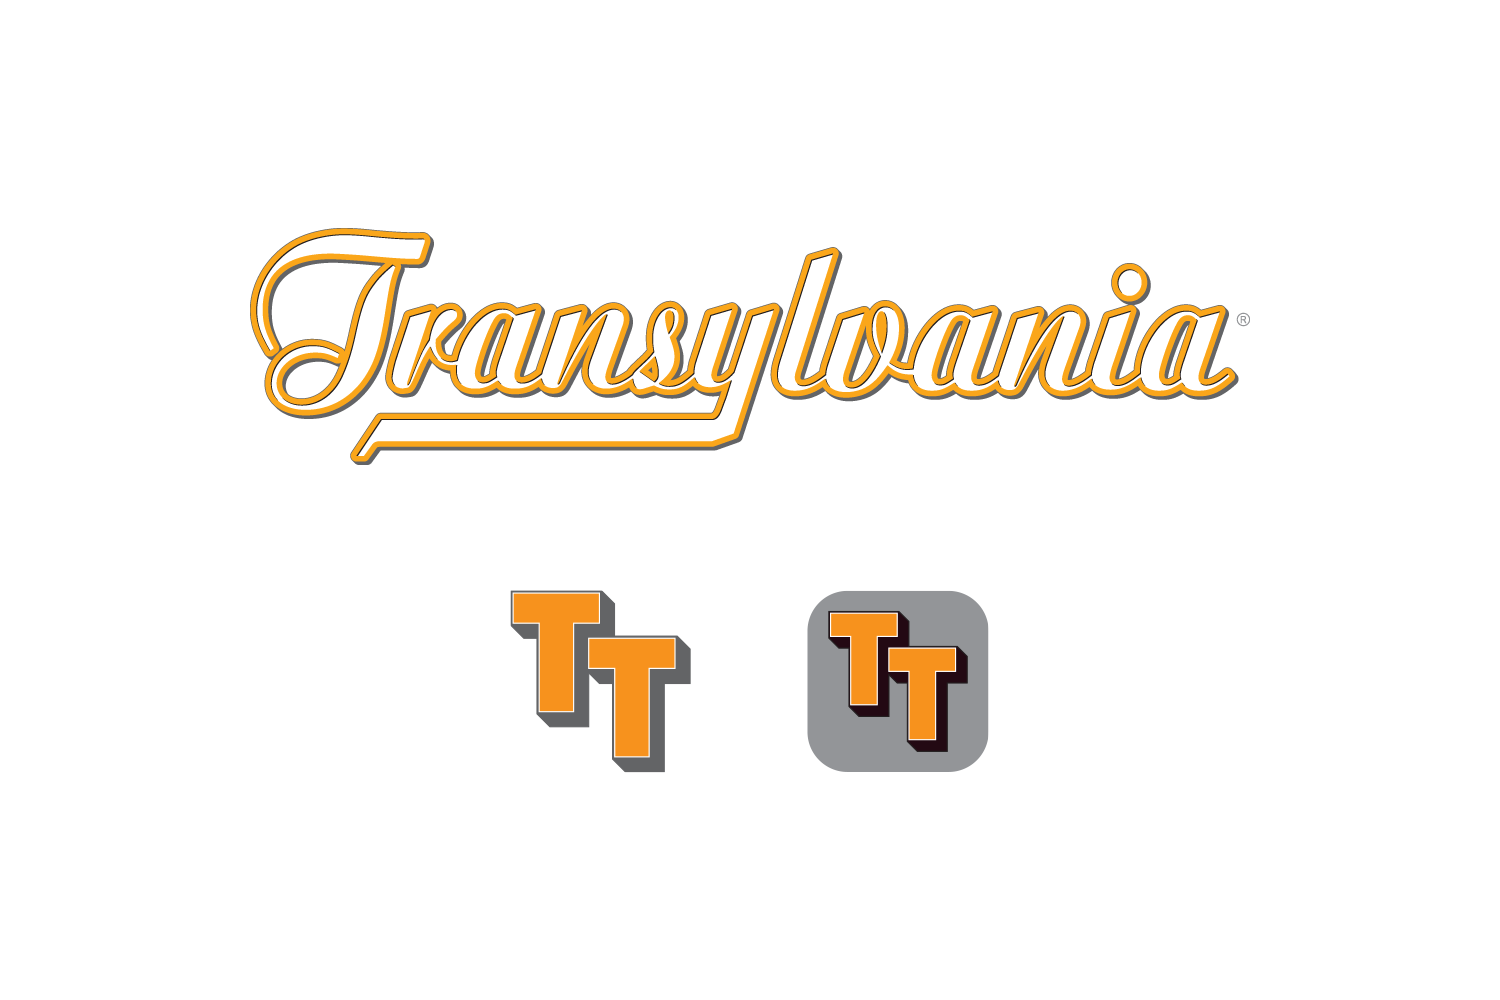 Transylvania Tech — Where the Monsters go to School.